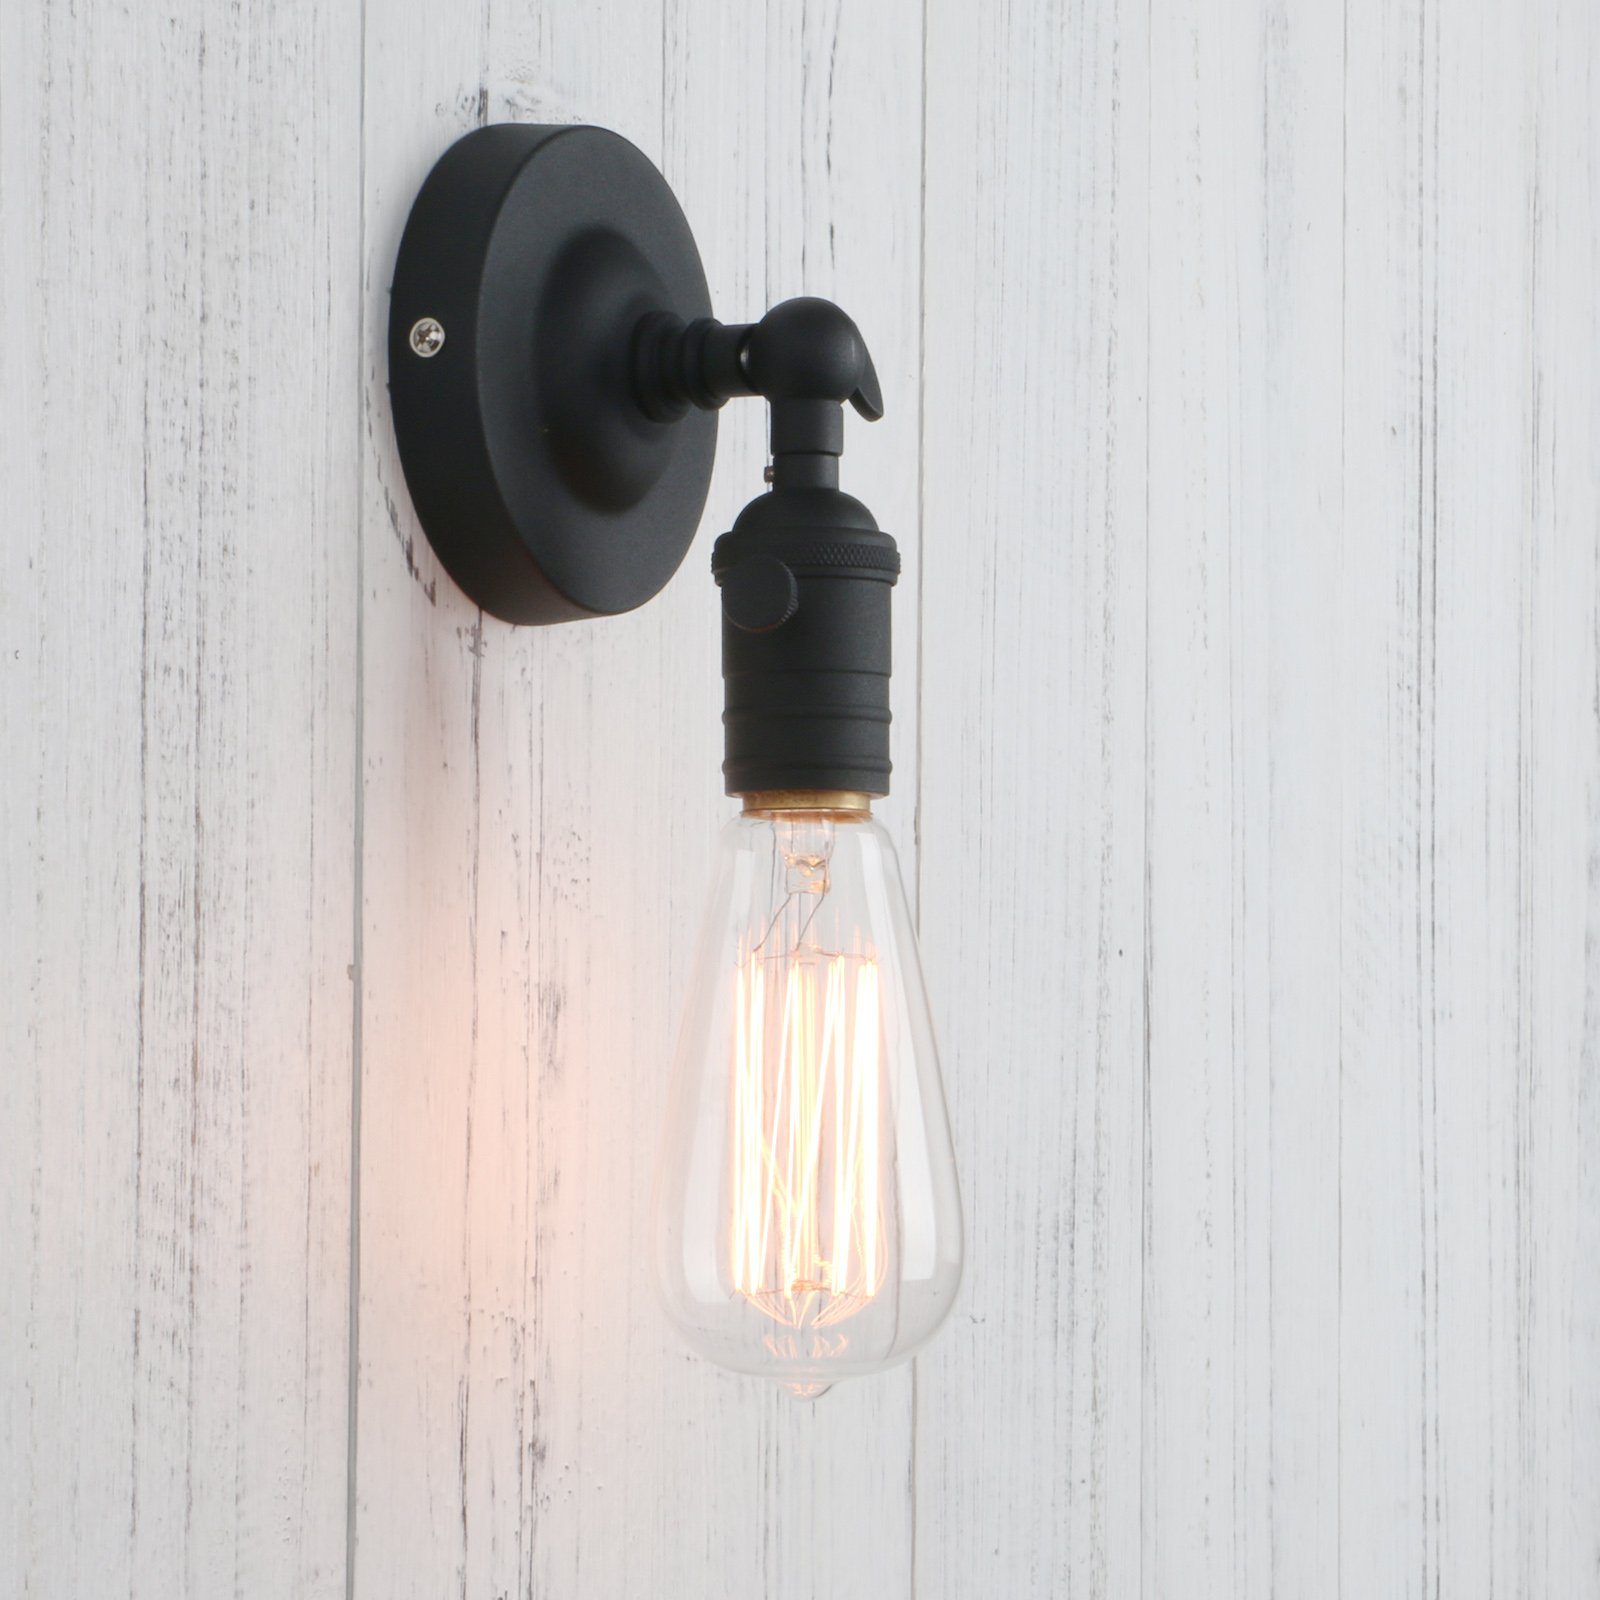 Permo Minimalist Single Socket 1- Light Wall Sconce Lighting with On/Off Switch (Black)